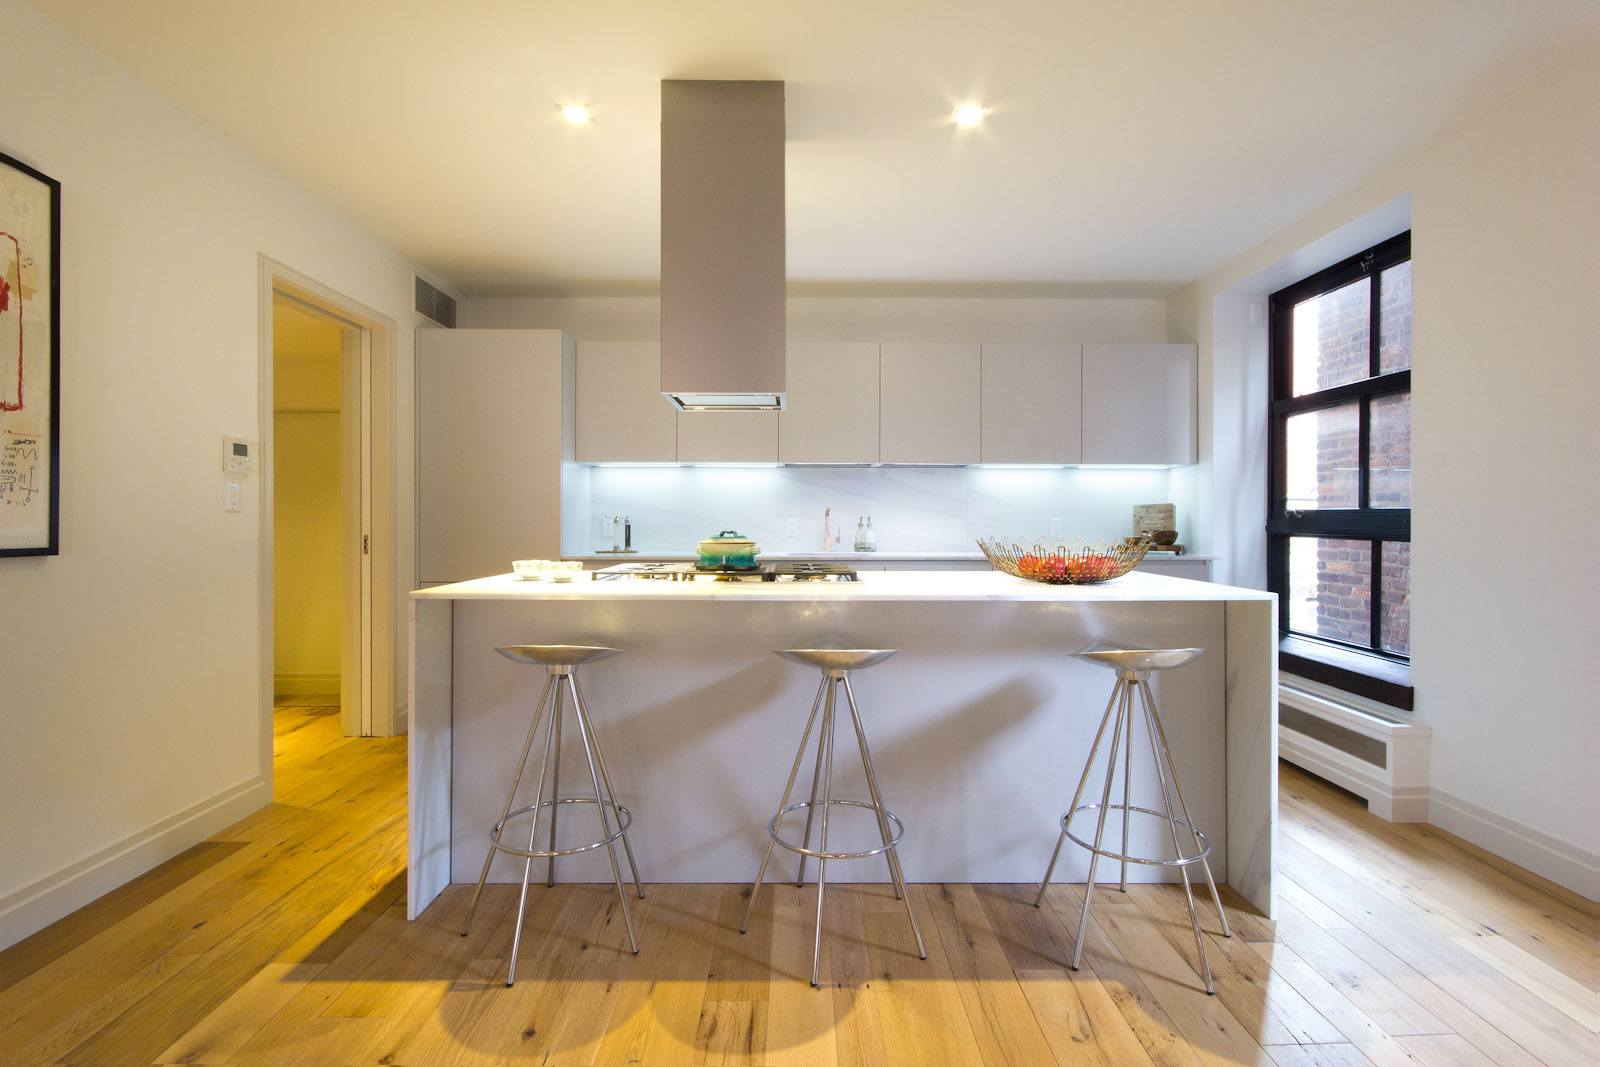 mid century kitchen cabinets farmhouse table sets inspirational nolita luxury loft in new york | idesignarch ...